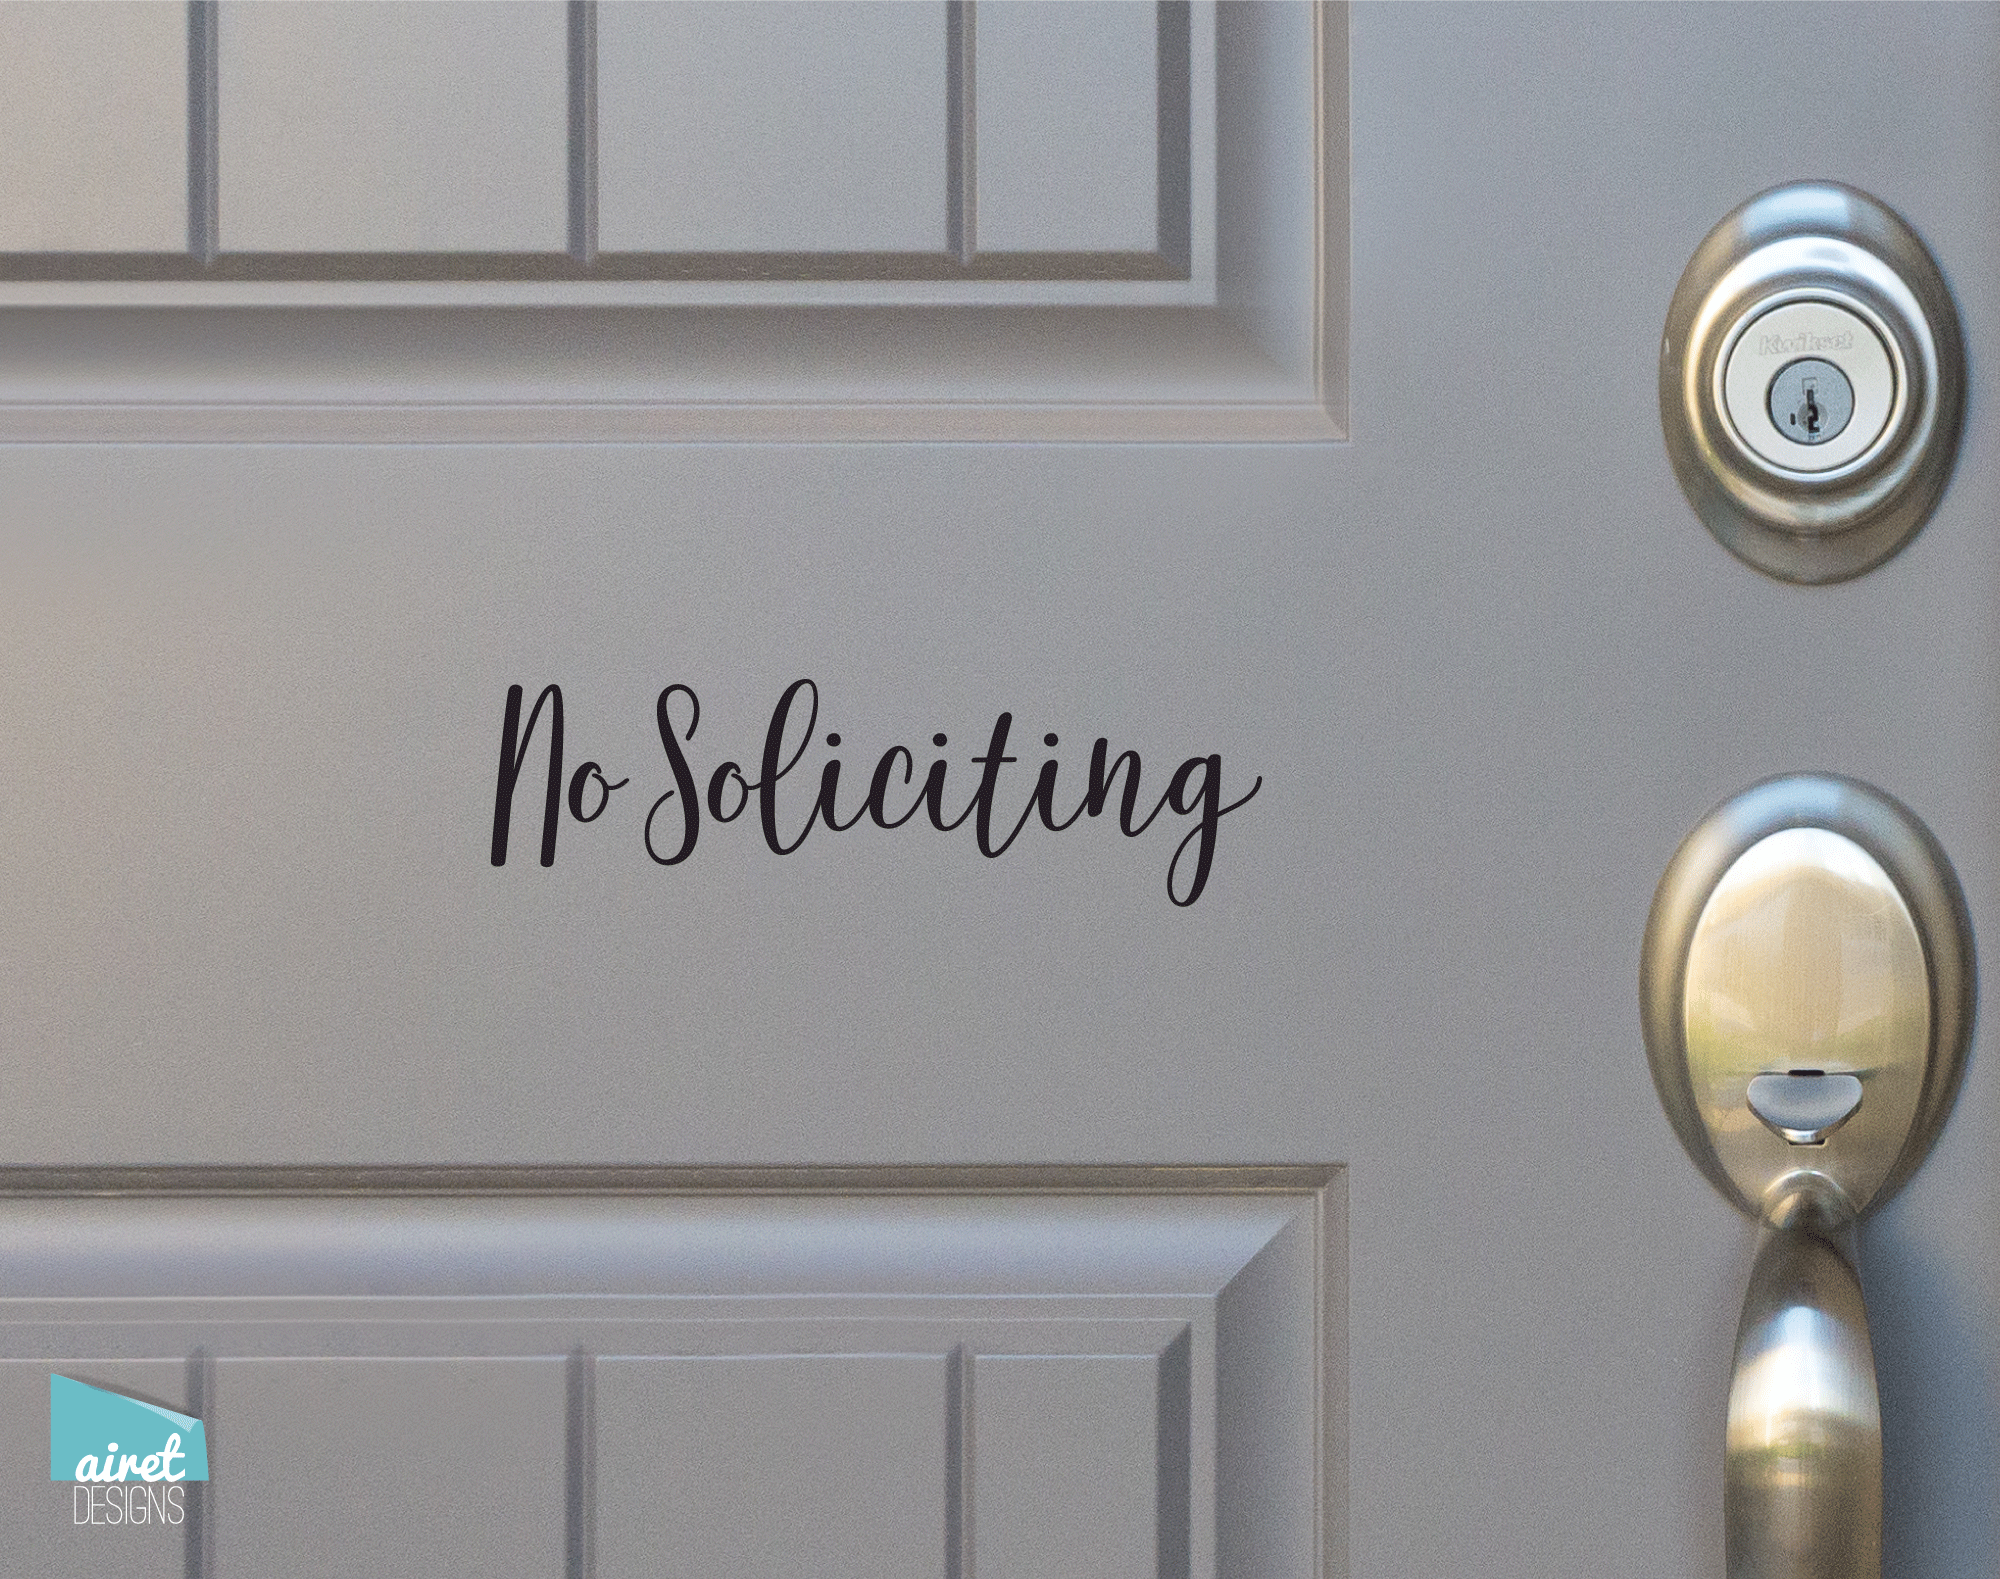 No Soliciting - Script Vinyl Decal Sticker Sign v7